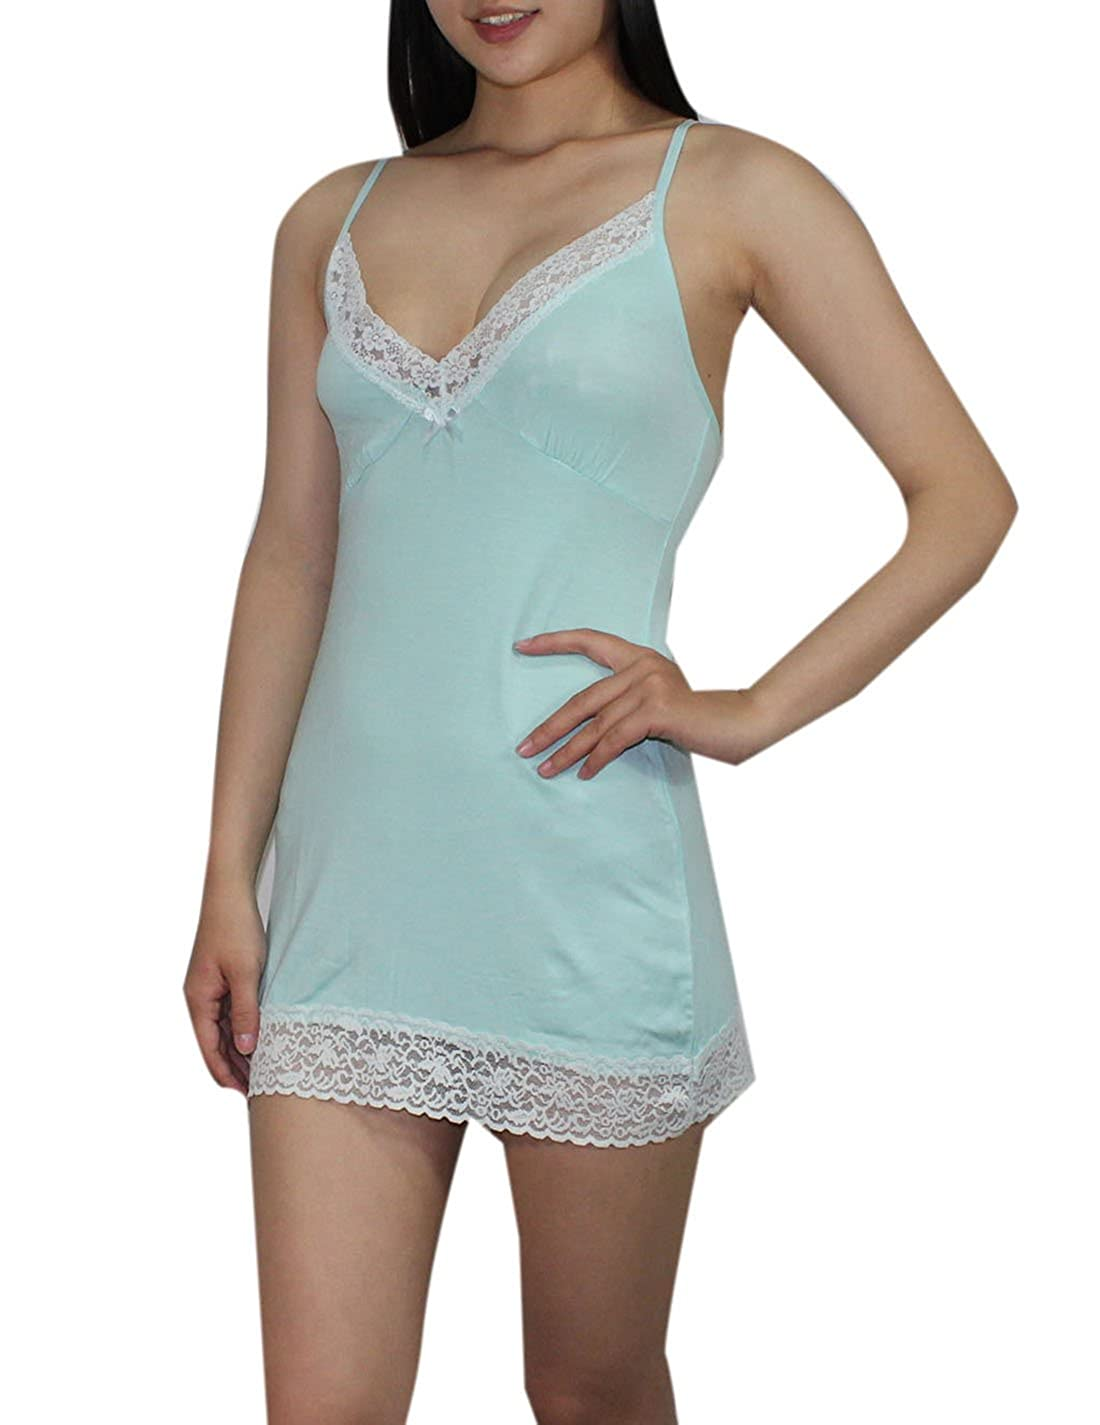 52e57dfc47 Victoria s Secret Womens Intimate Apparel - Sexy Sleepwear Chemise L Light  Blue at Amazon Women s Clothing store